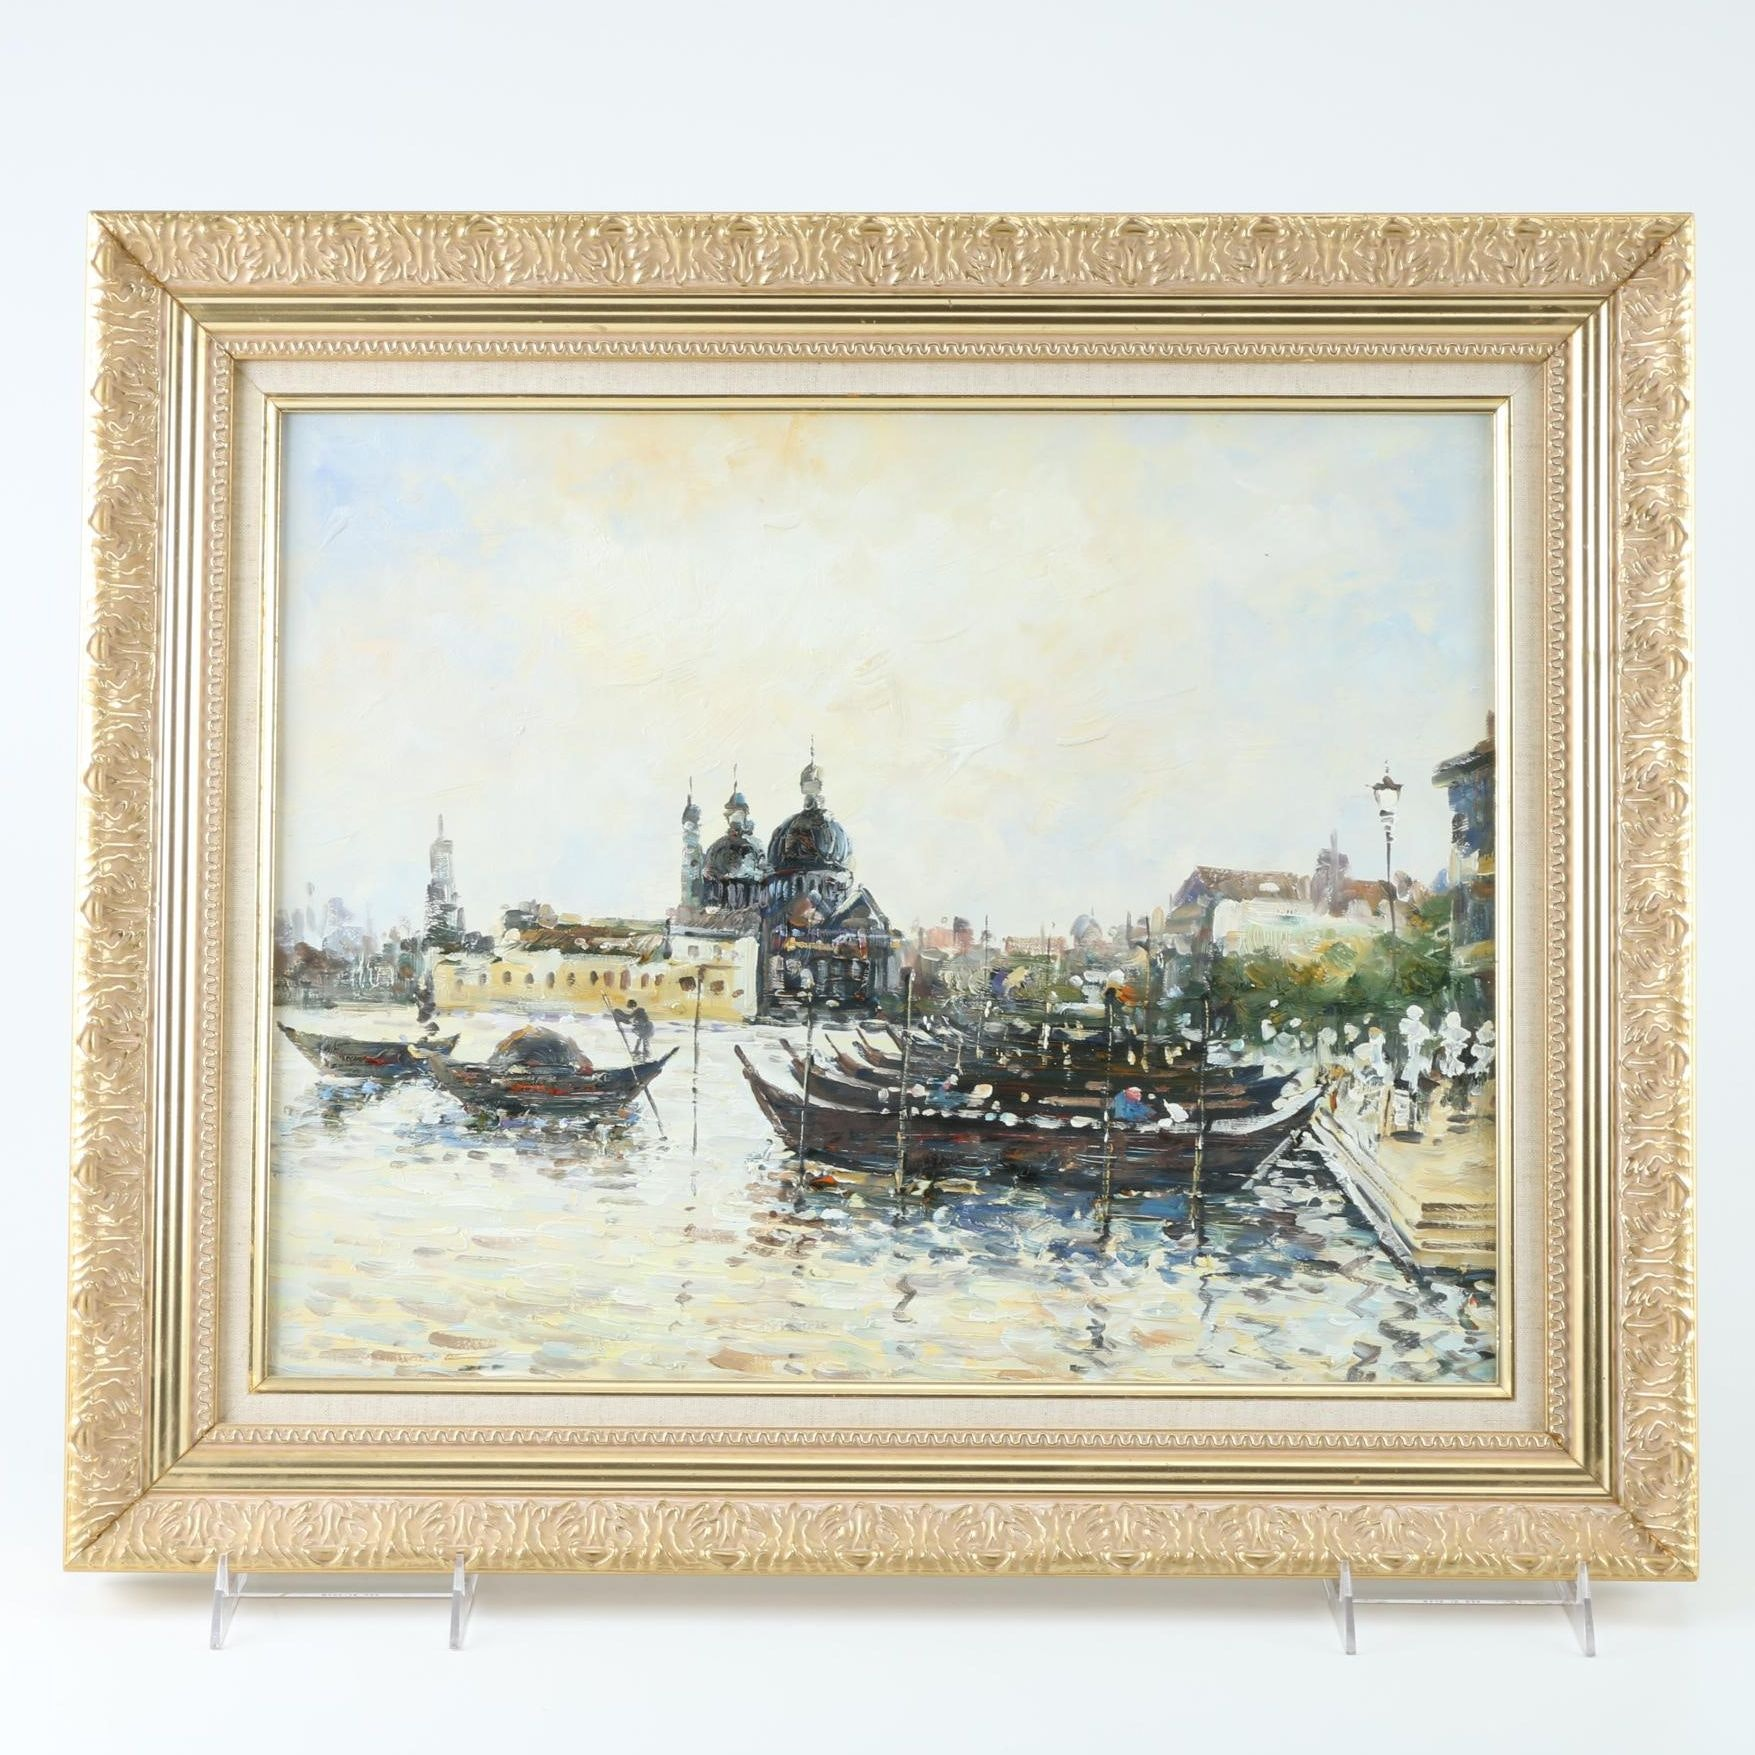 Oil Painting on Canvas of Venice Canal Scene